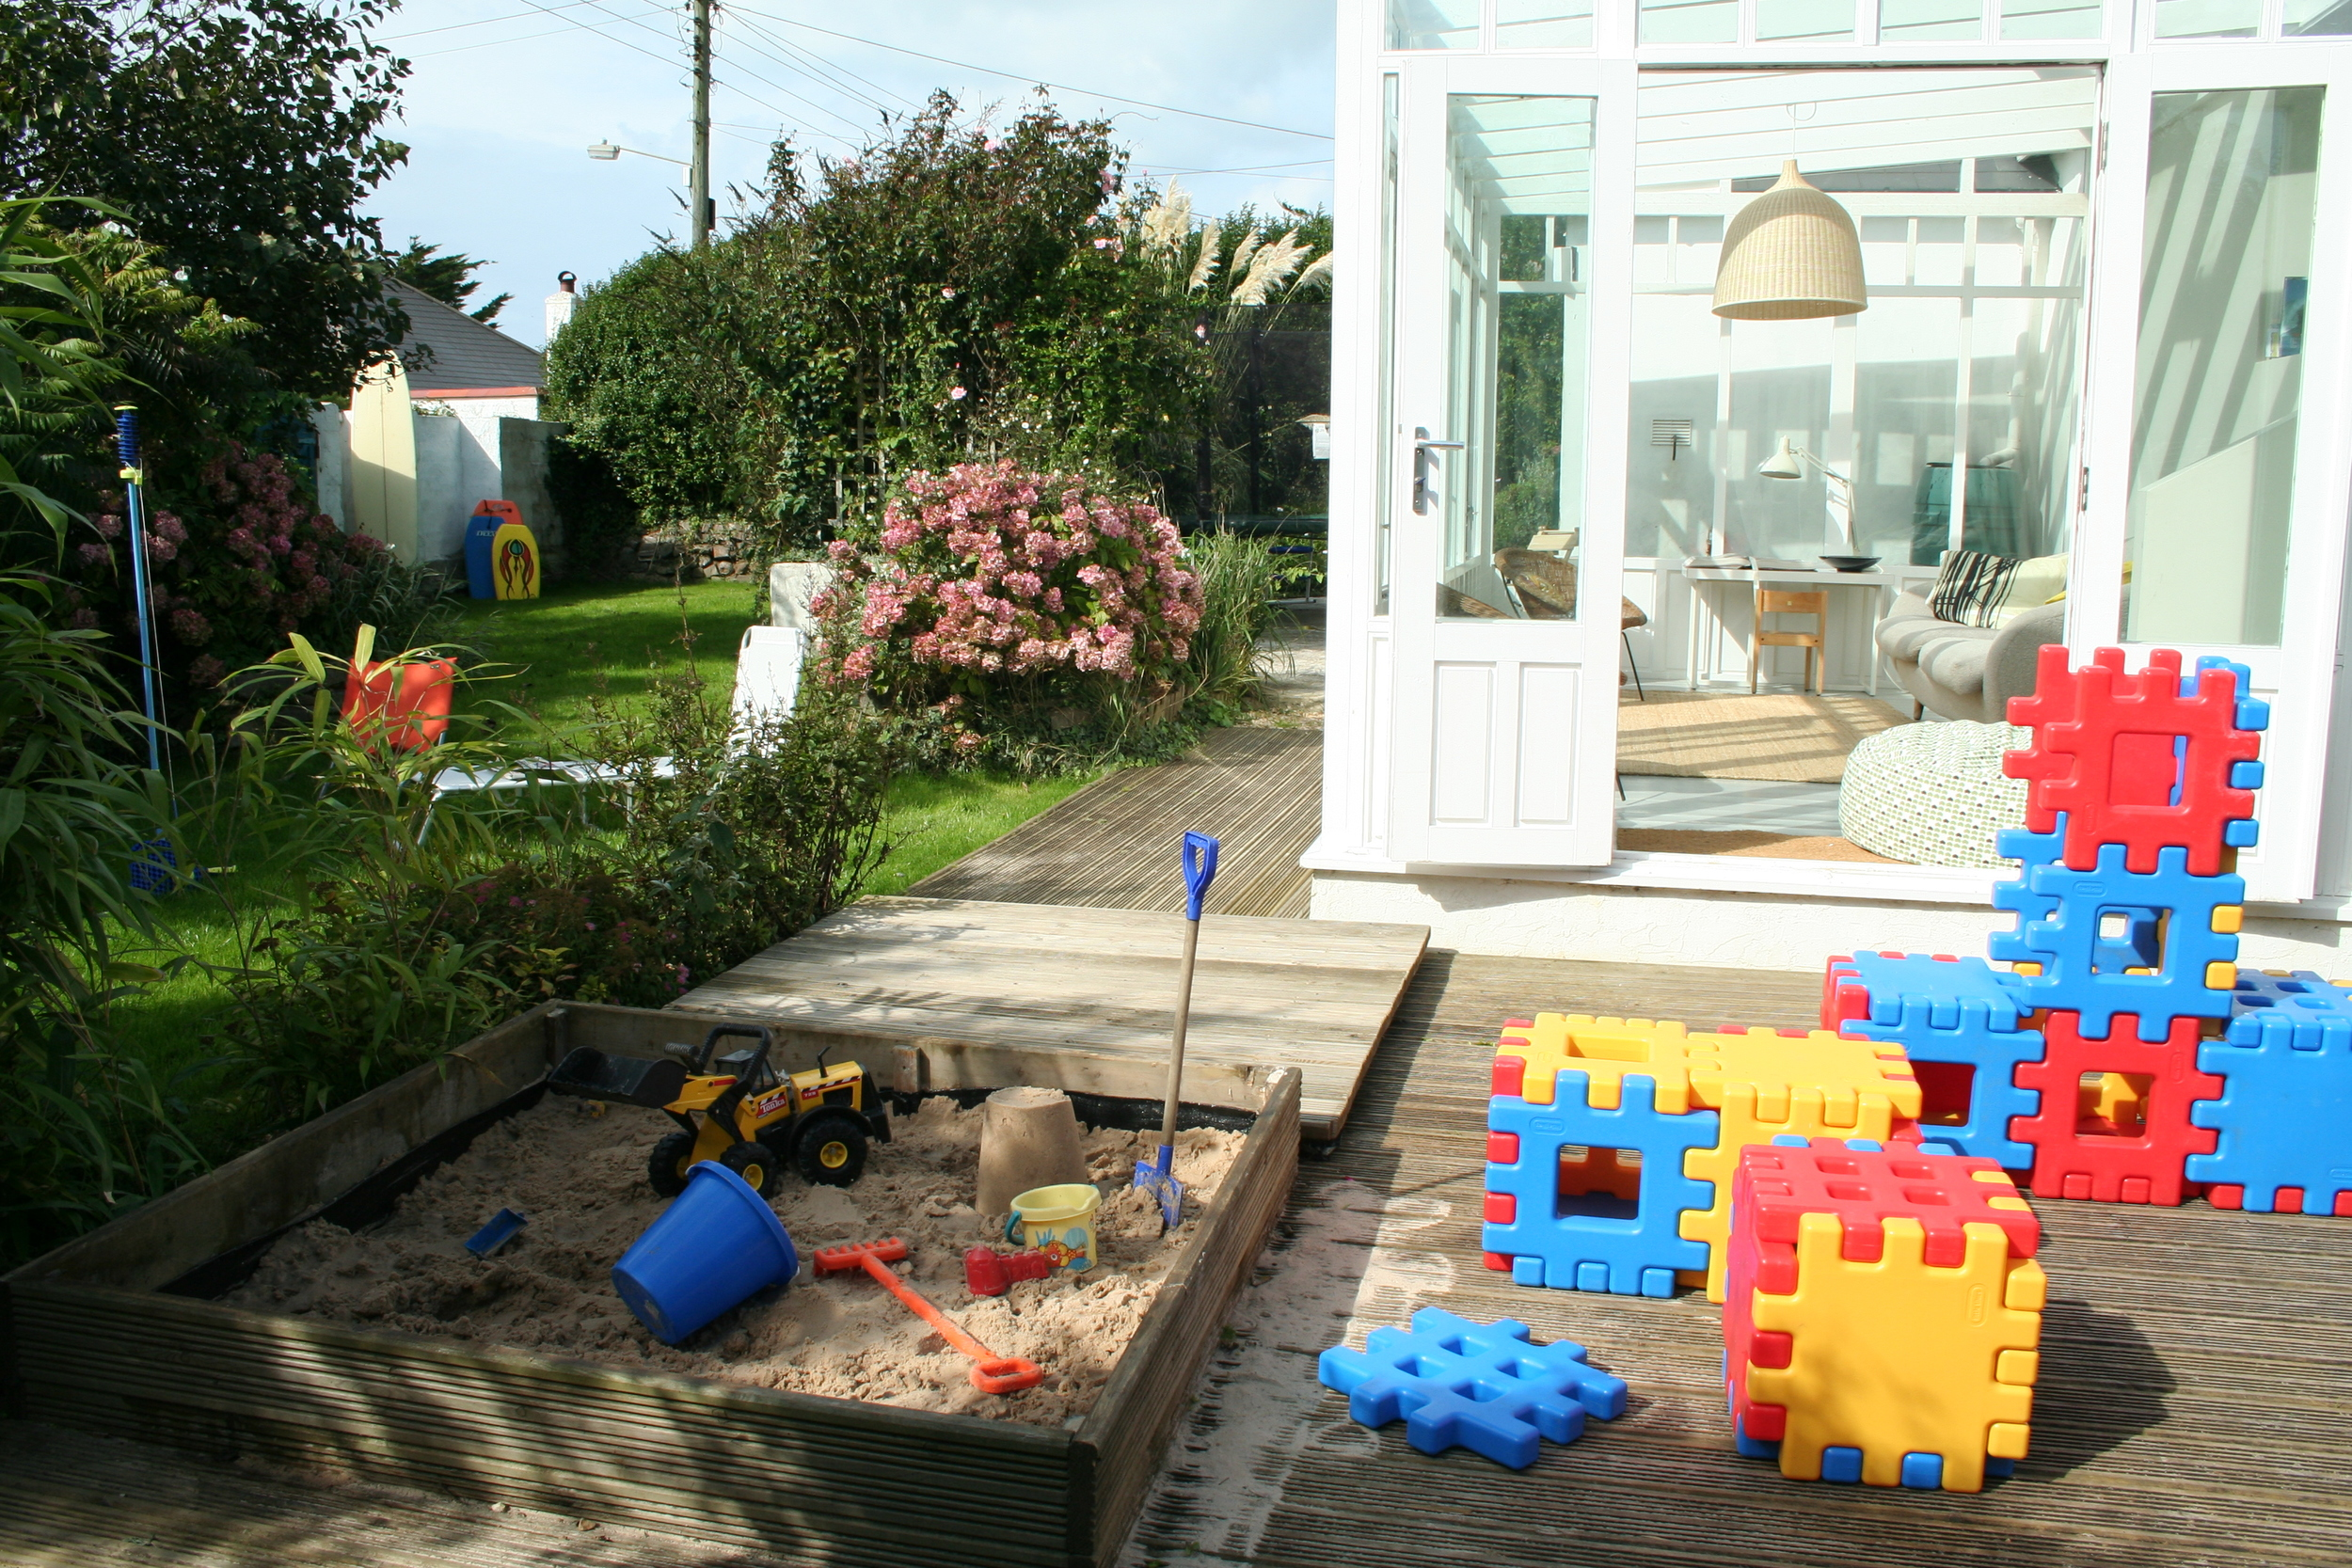 Garden view (pls note thsi deck and sandpit now replaced with stones)